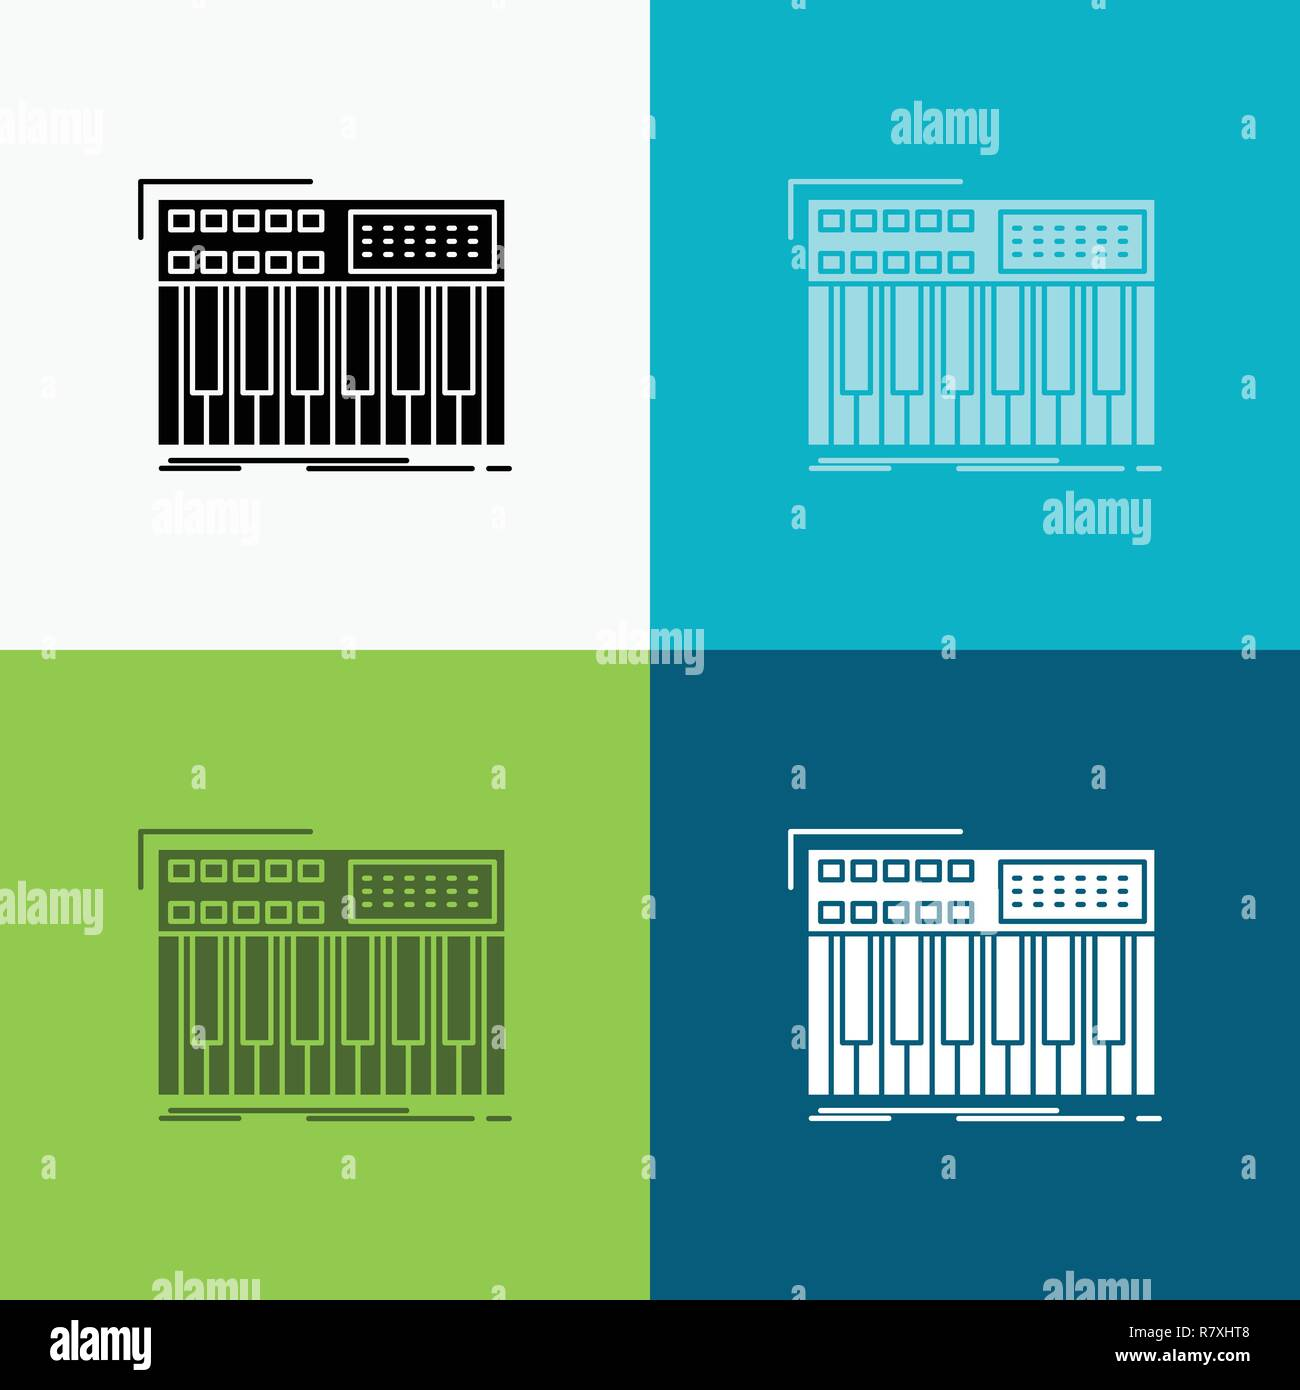 synth, keyboard, midi, synthesiser, synthesizer Icon Over Various